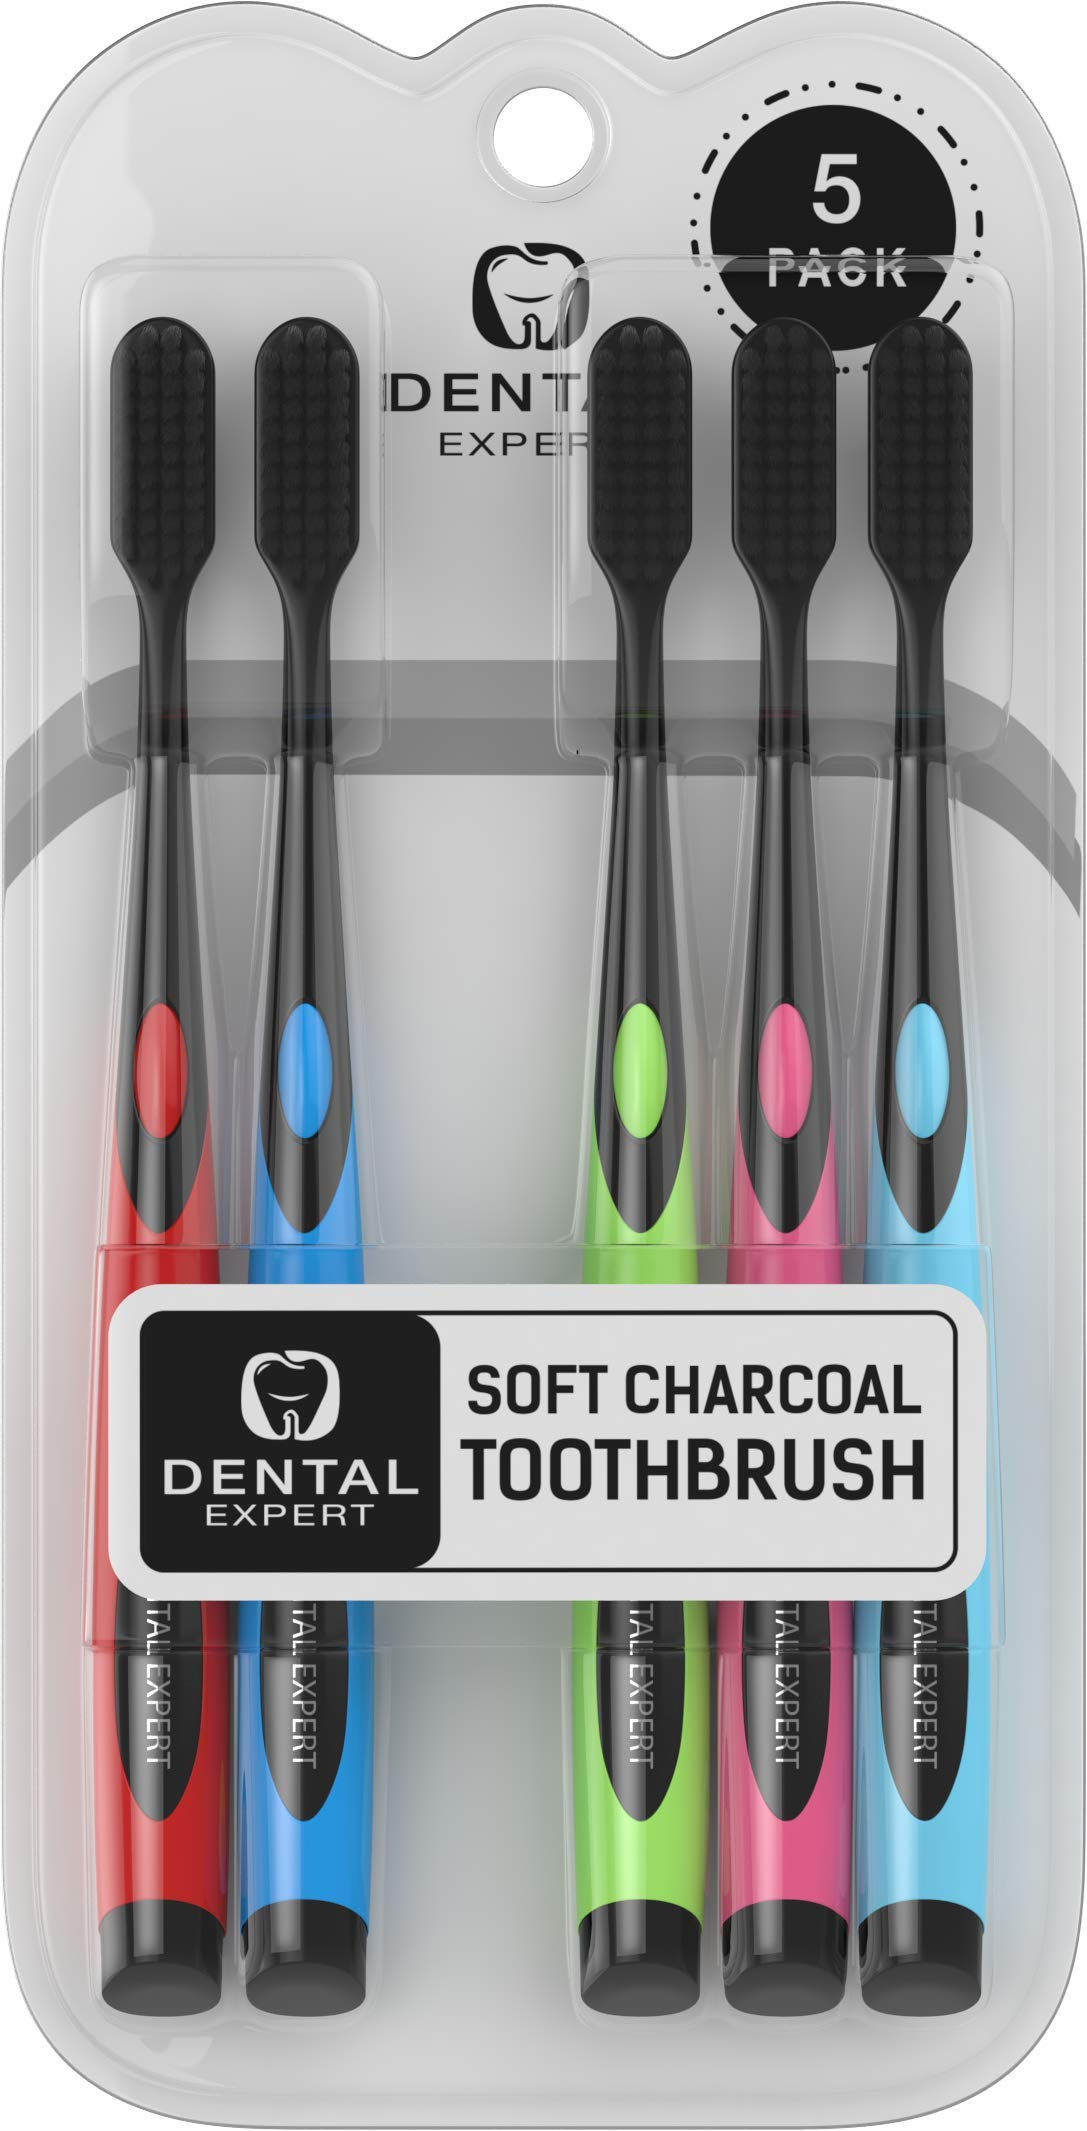 5 Pack Colorful Charcoal Toothbrush [GENTLE SOFT] Slim Teeth Head Whitening Brush for Adults & Children [FAMILY PACK] - Ultra Soft Medium Tip Bristles